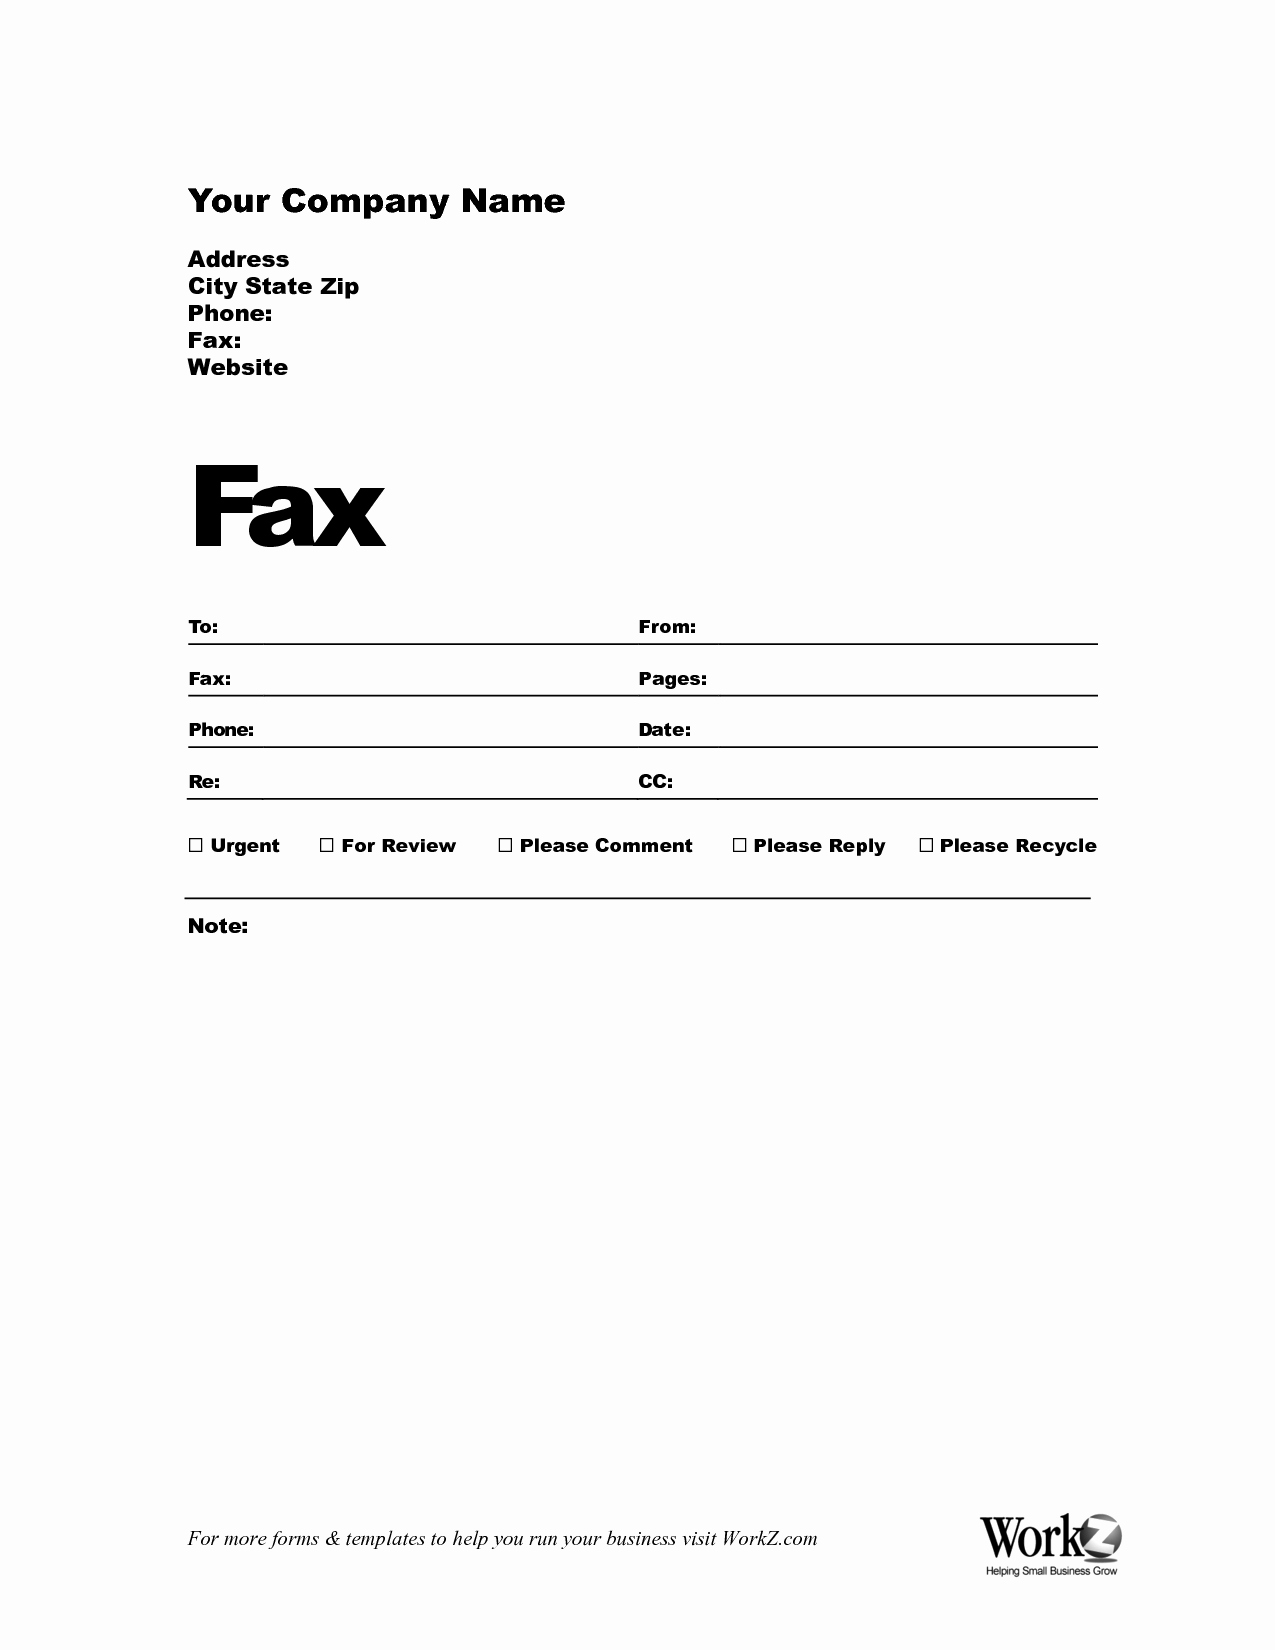 Free Fax Cover Sheets Inspirational Professional Fax Cover Sheet